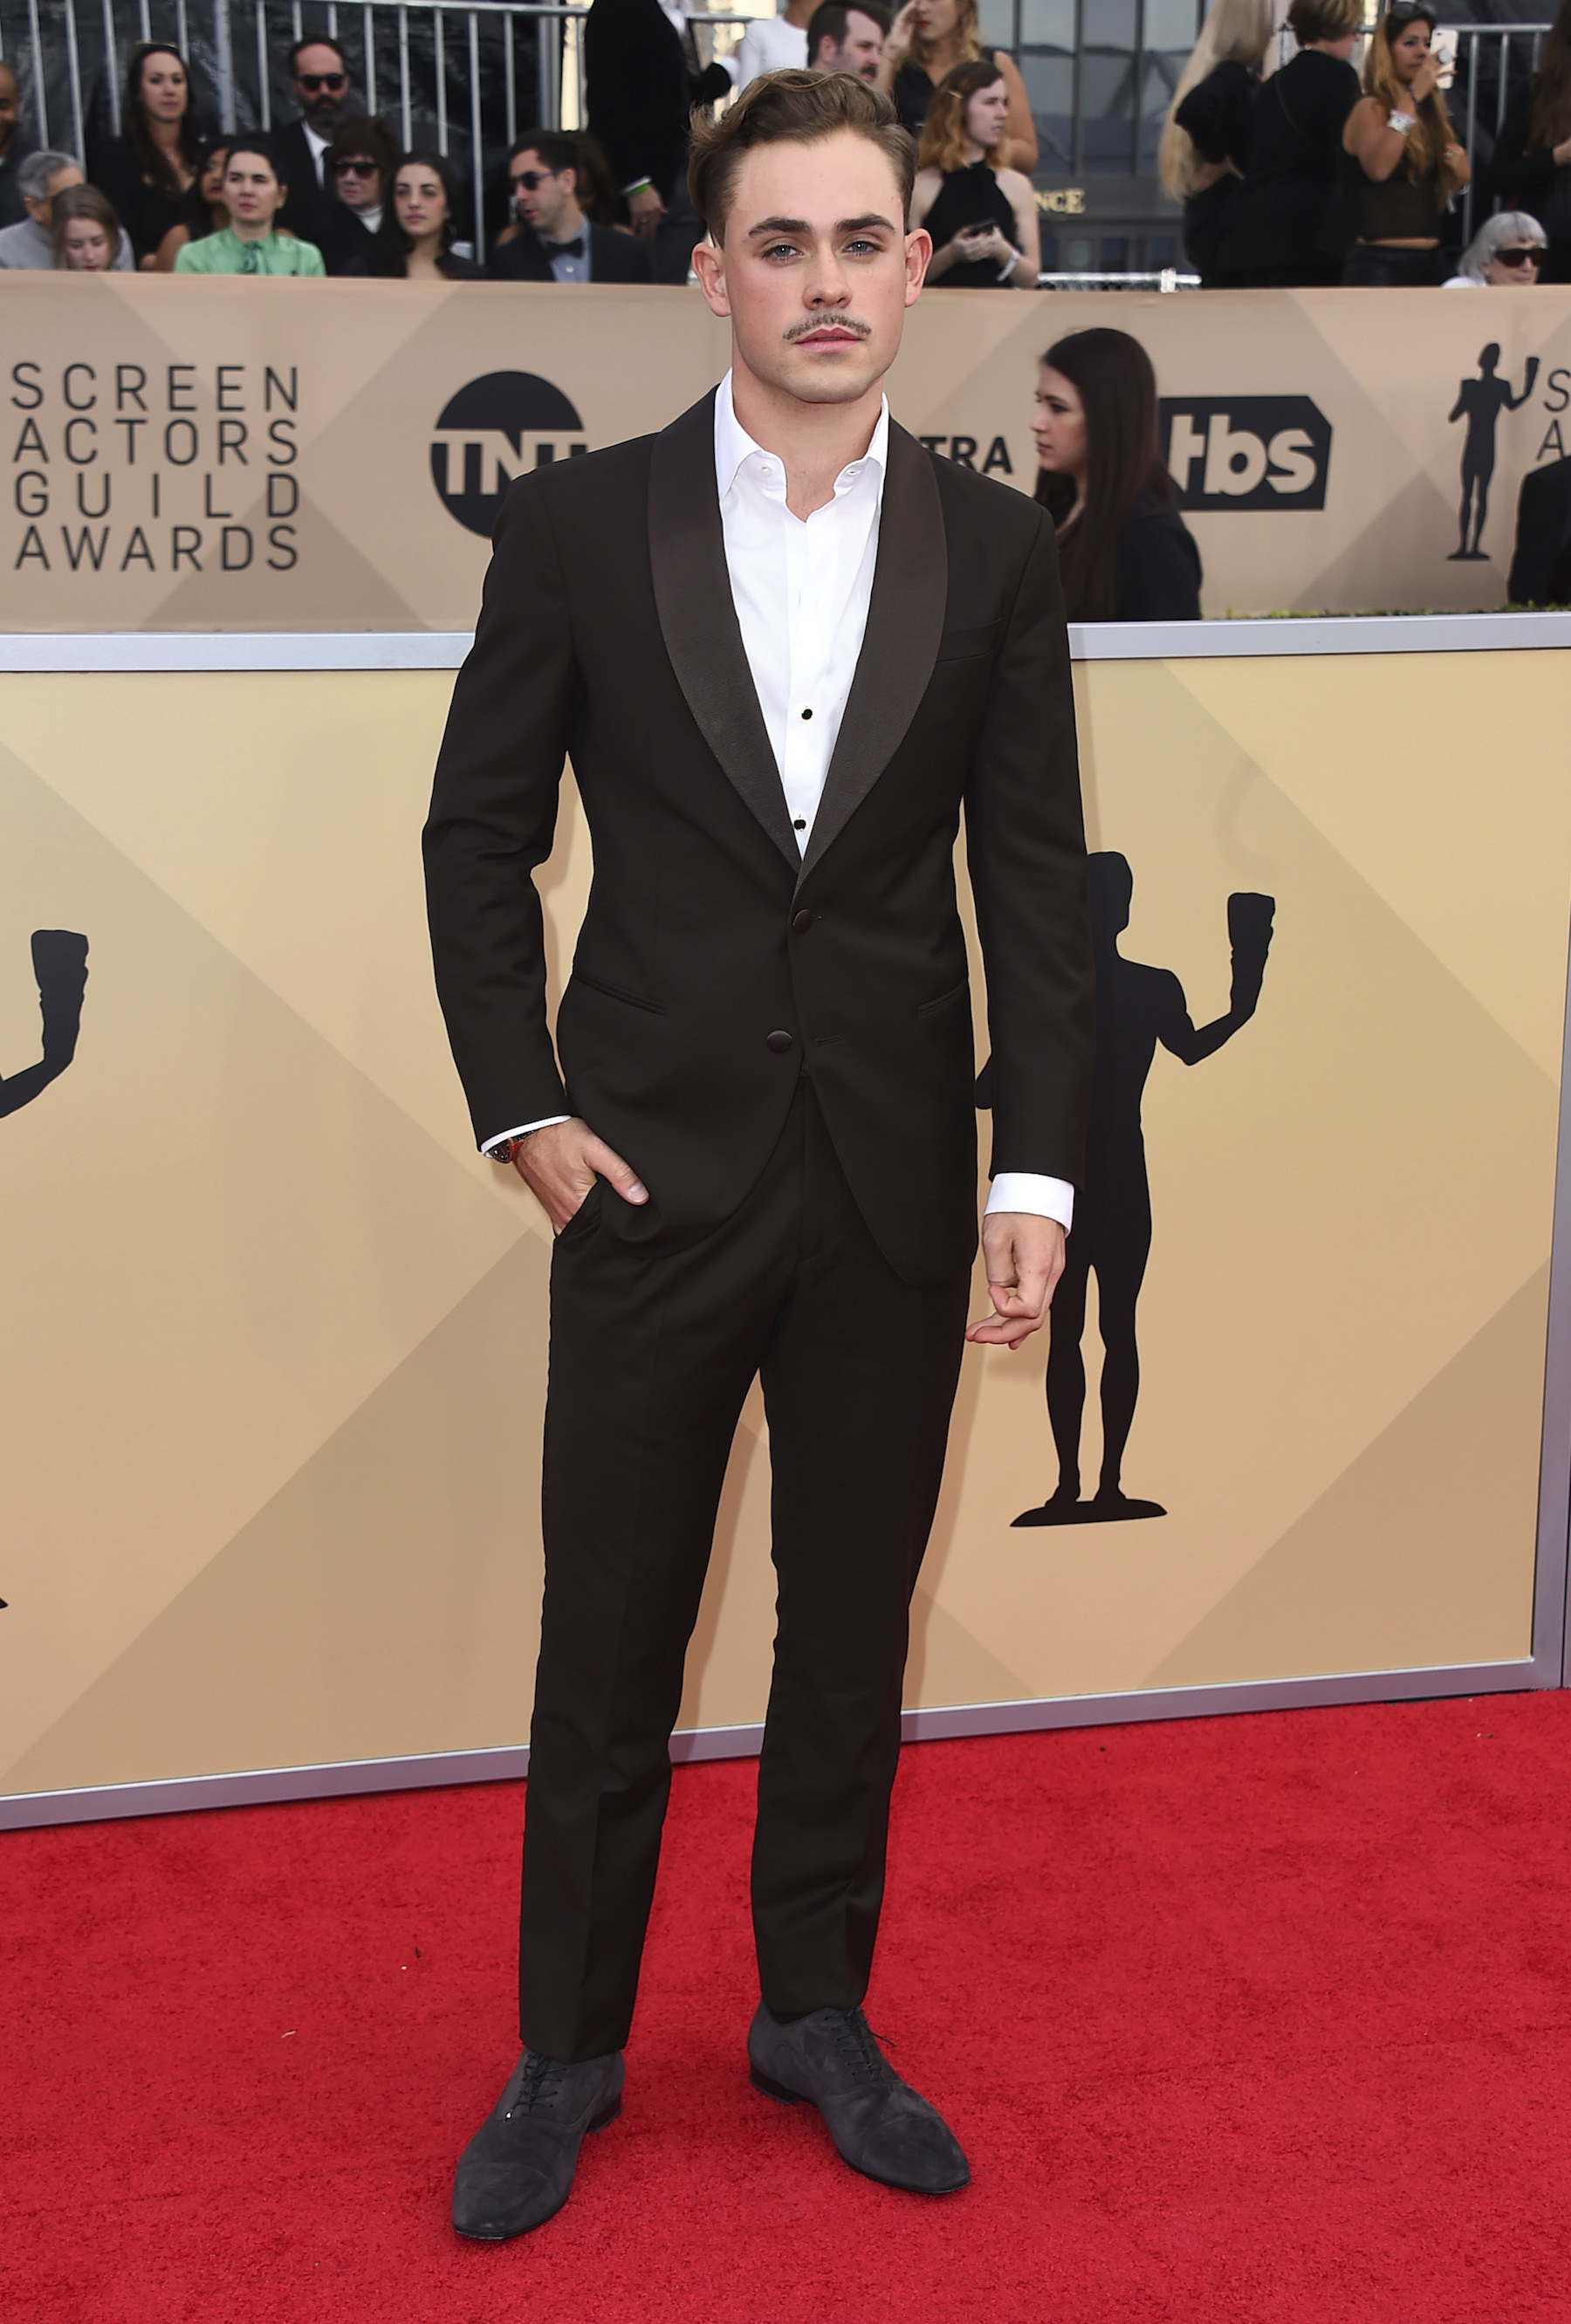 <div class='meta'><div class='origin-logo' data-origin='AP'></div><span class='caption-text' data-credit='Jordan Strauss/Invision/AP'>Dacre Montgomery arrives at the 24th annual Screen Actors Guild Awards at the Shrine Auditorium & Expo Hall on Sunday, Jan. 21, 2018, in Los Angeles.</span></div>